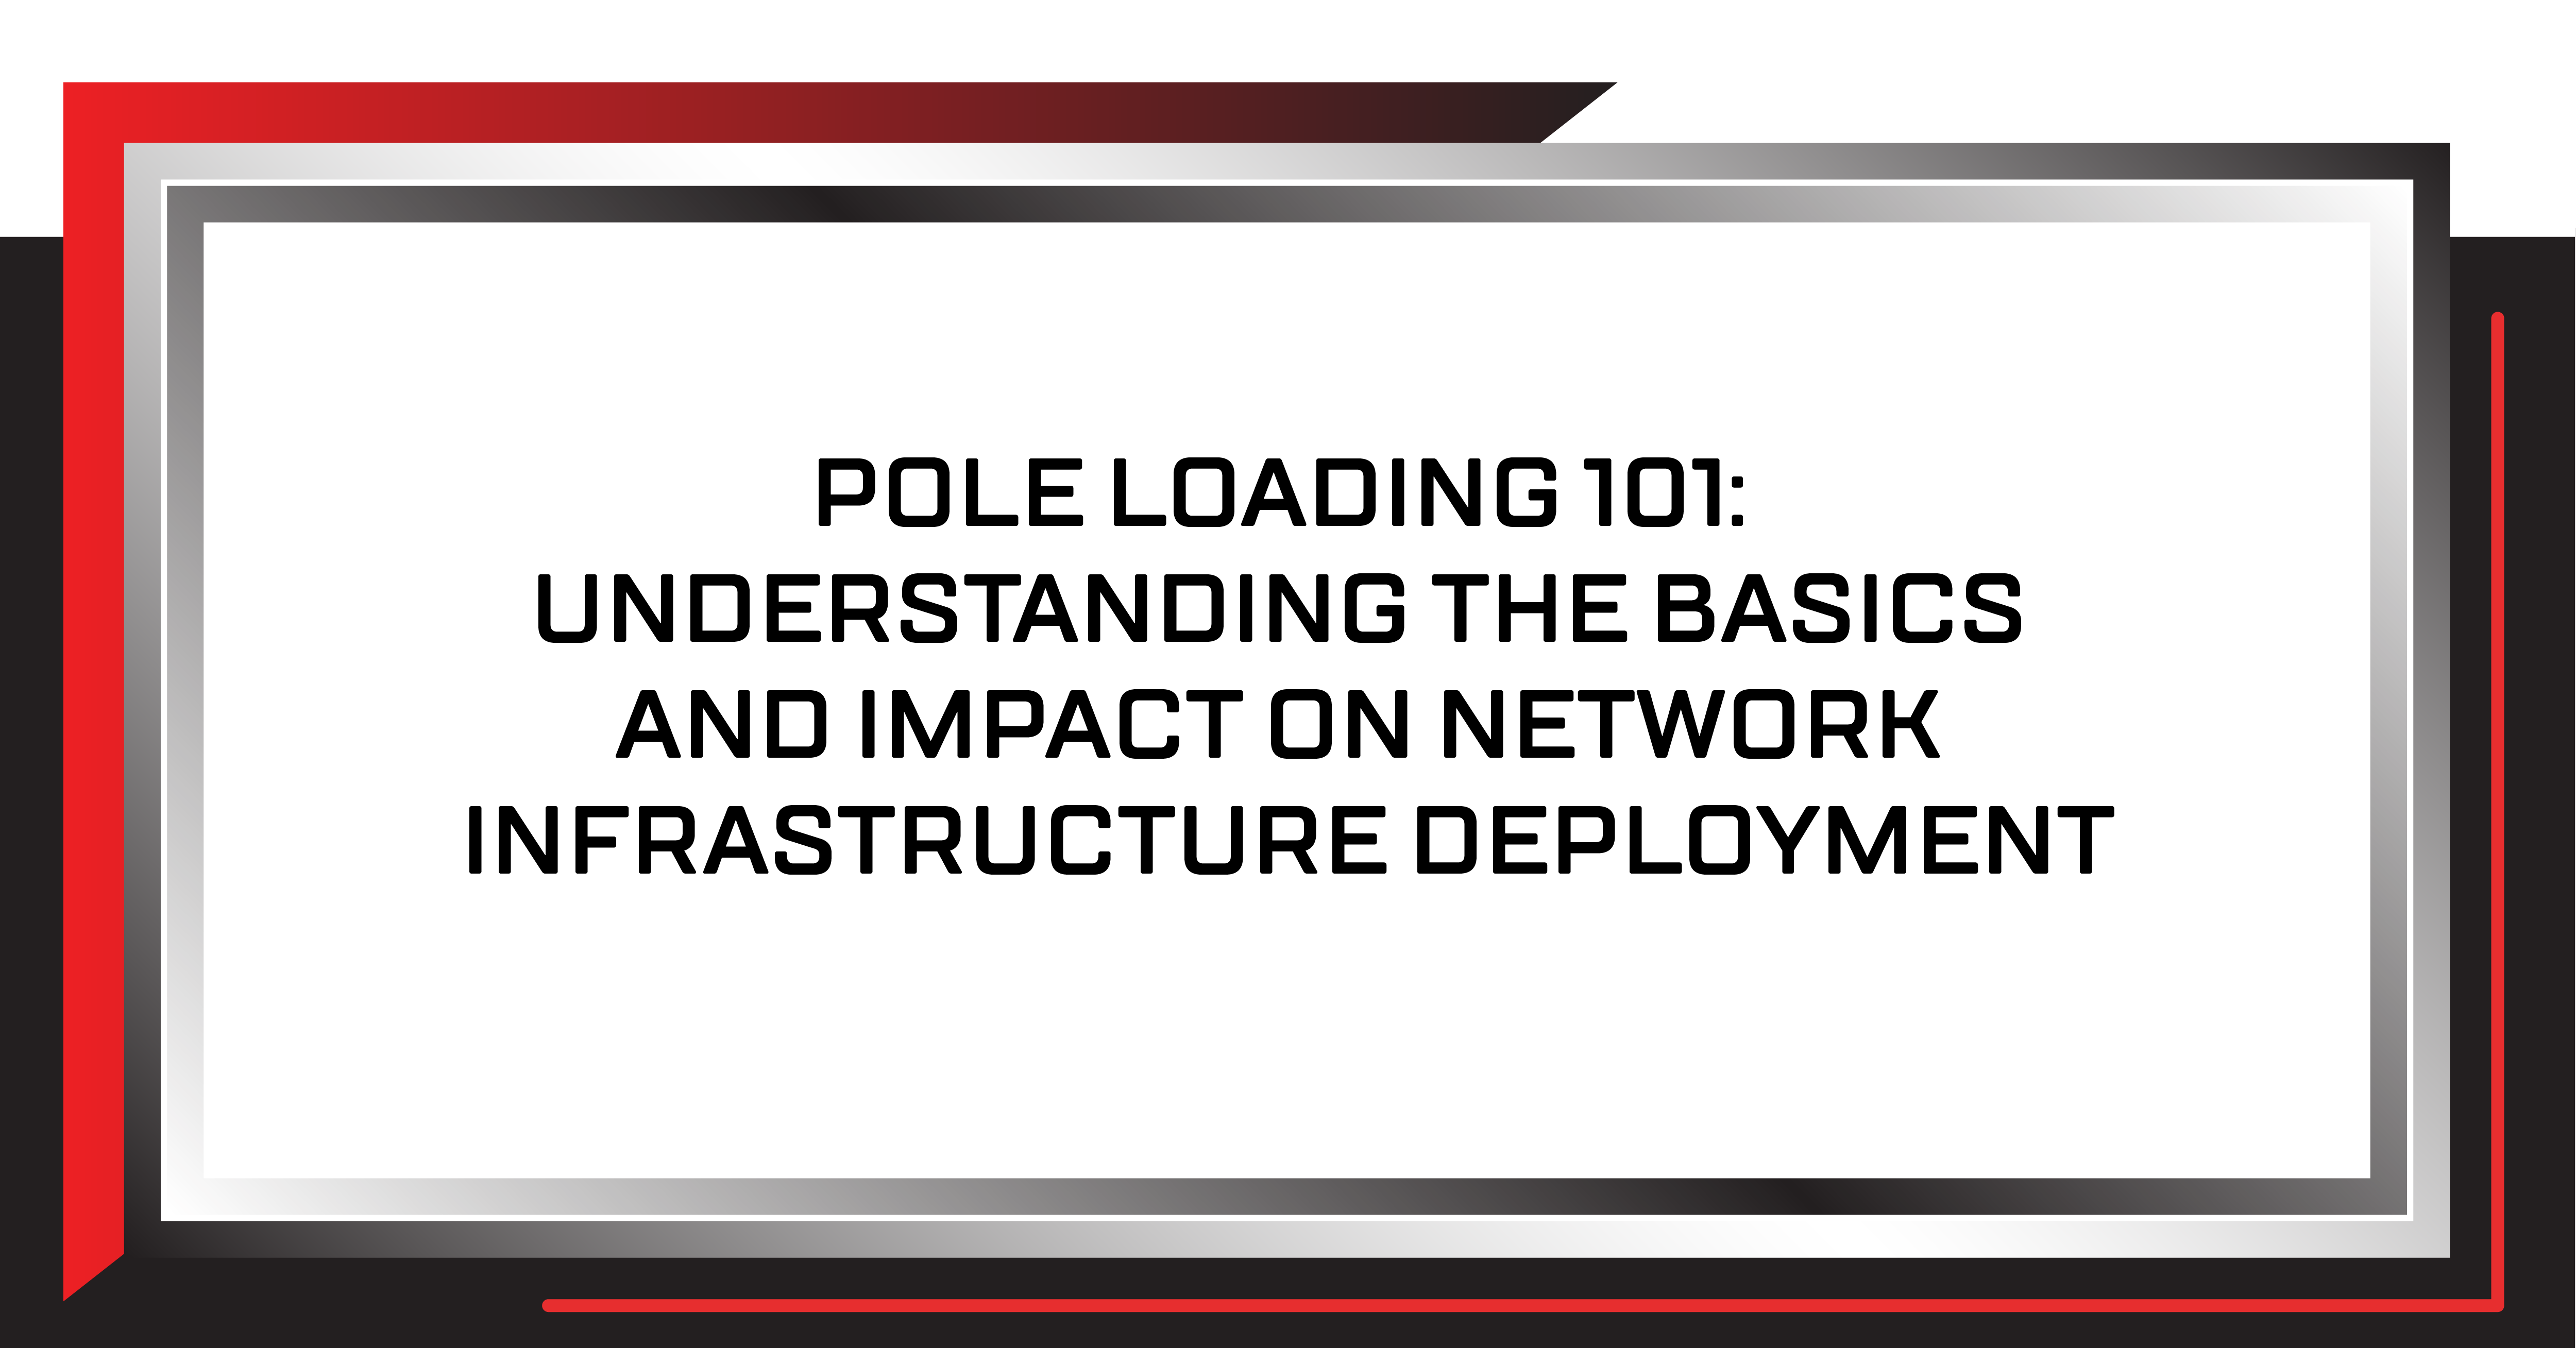 Pole Loading 101: Understanding the Basics and Impact on Network Infrastructure Deployment